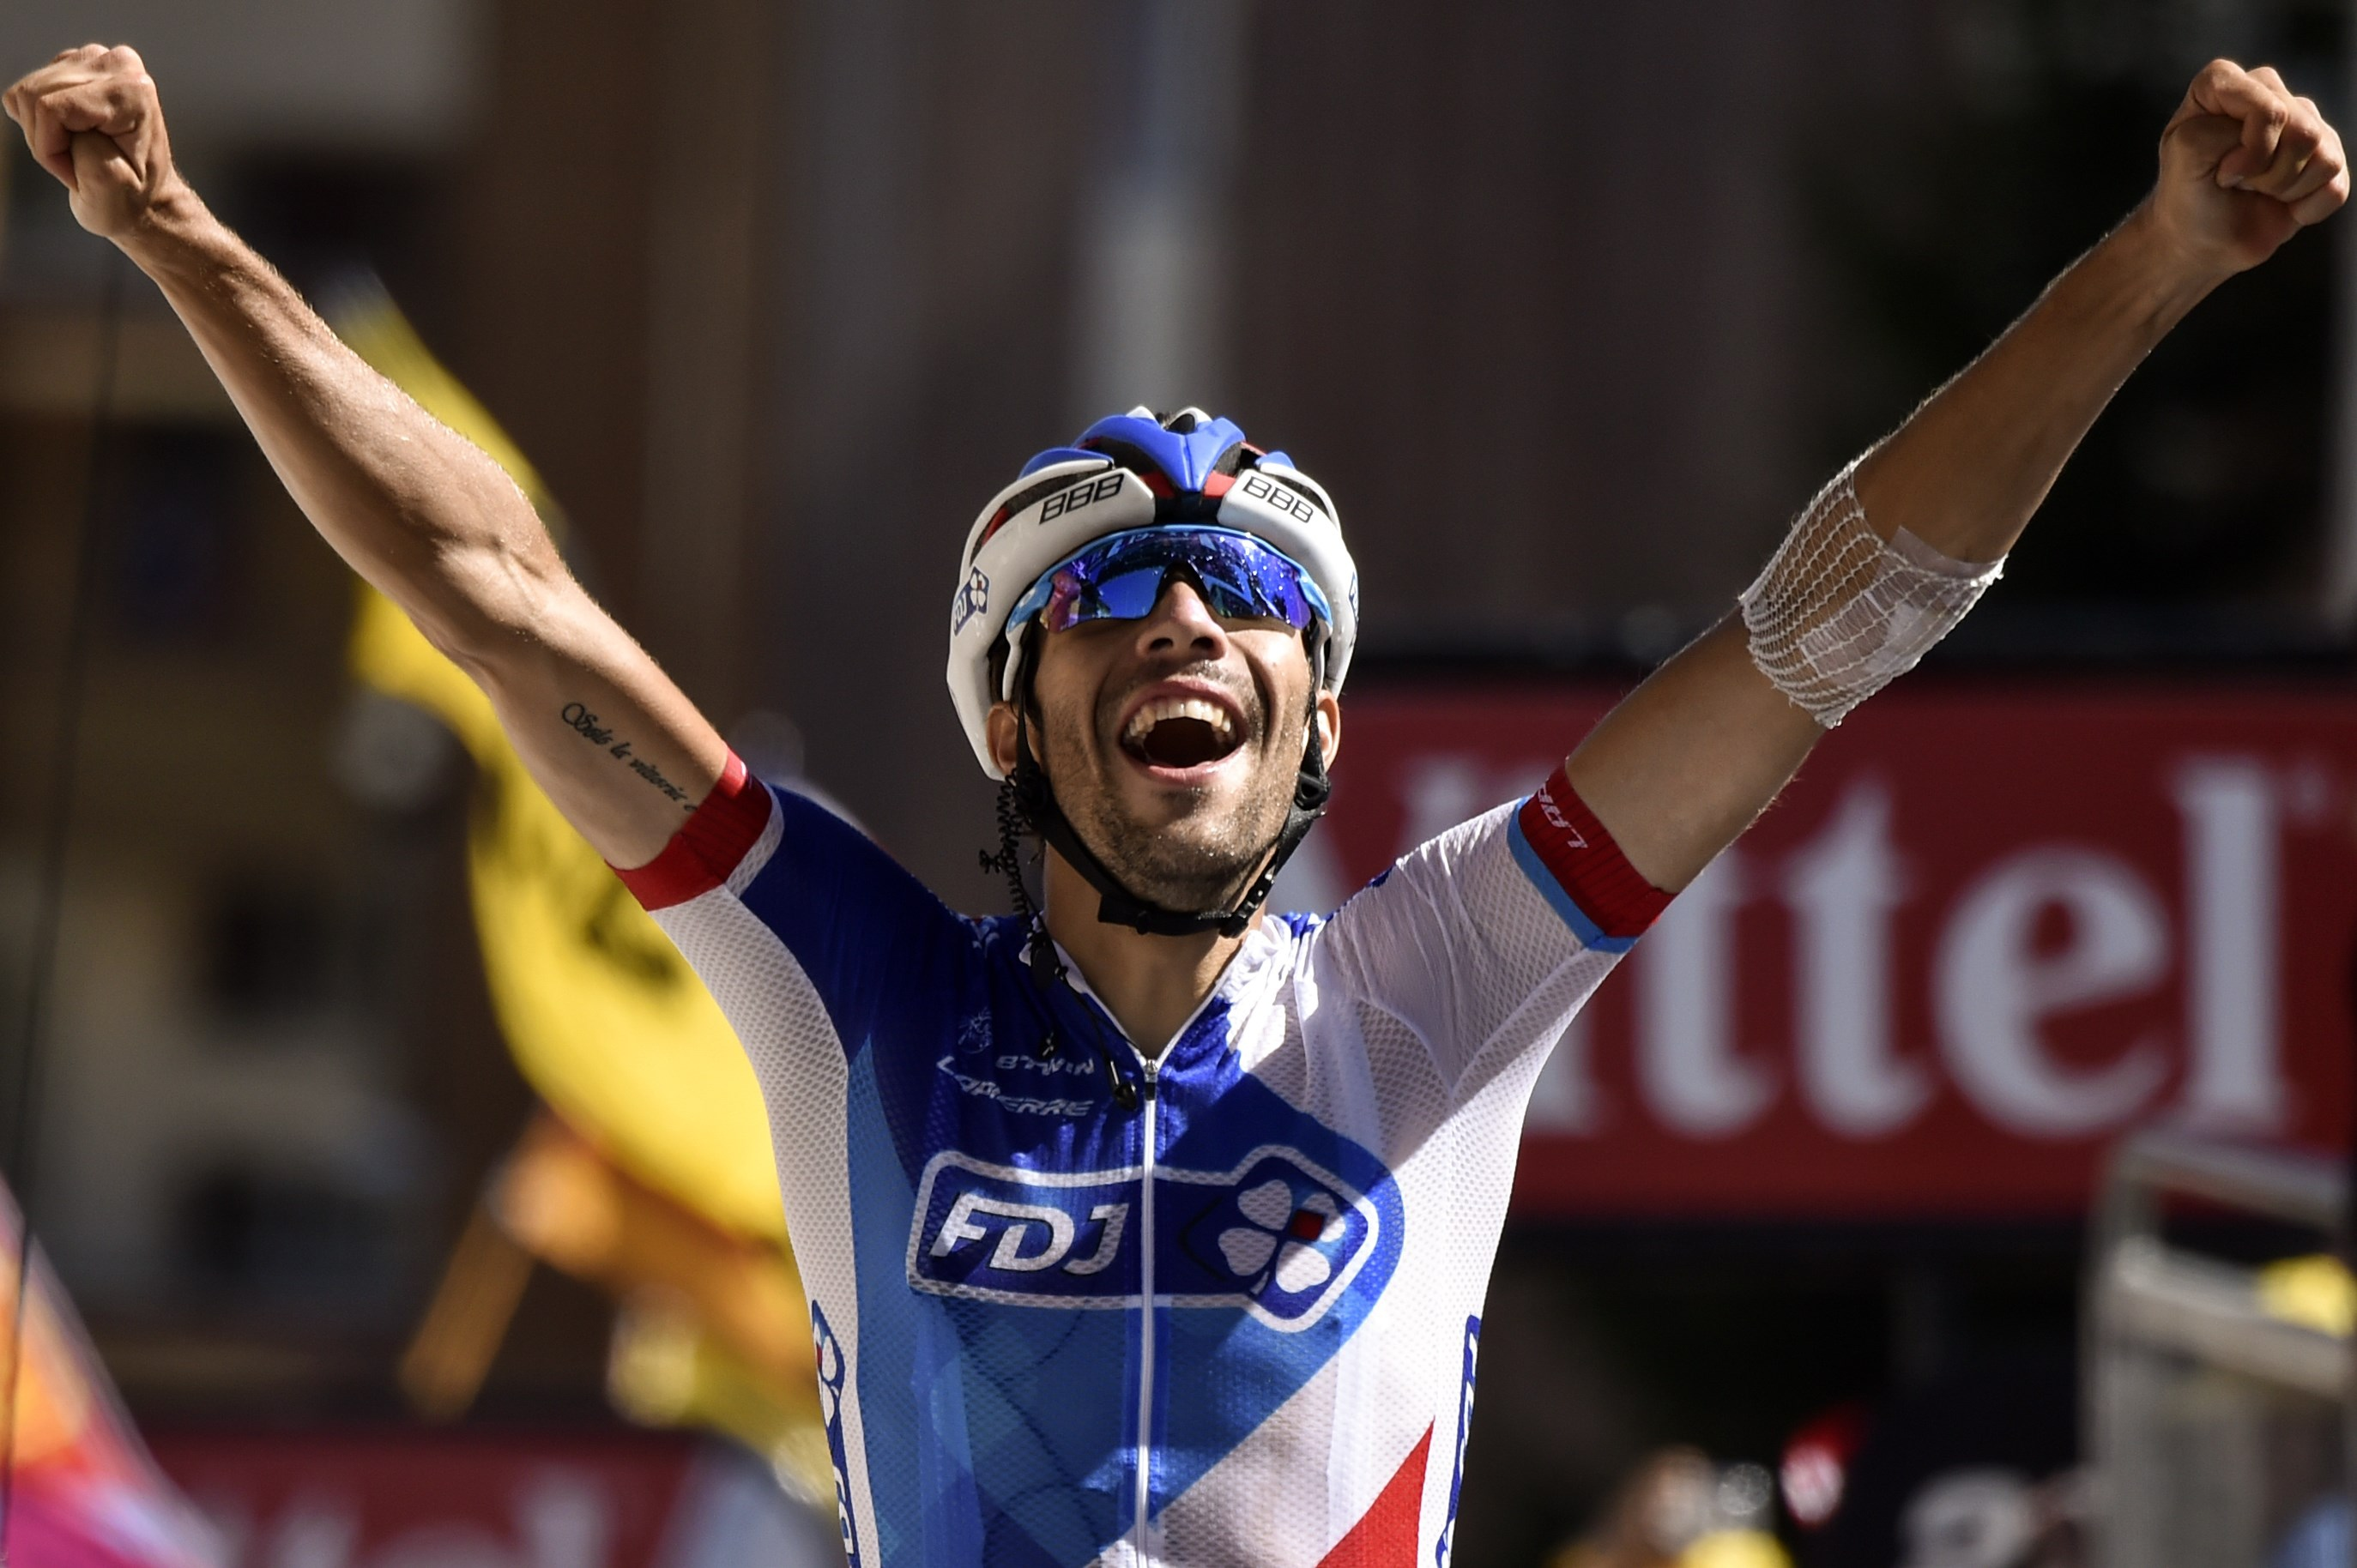 Tour de France Teams 2016 FDJ Pinot